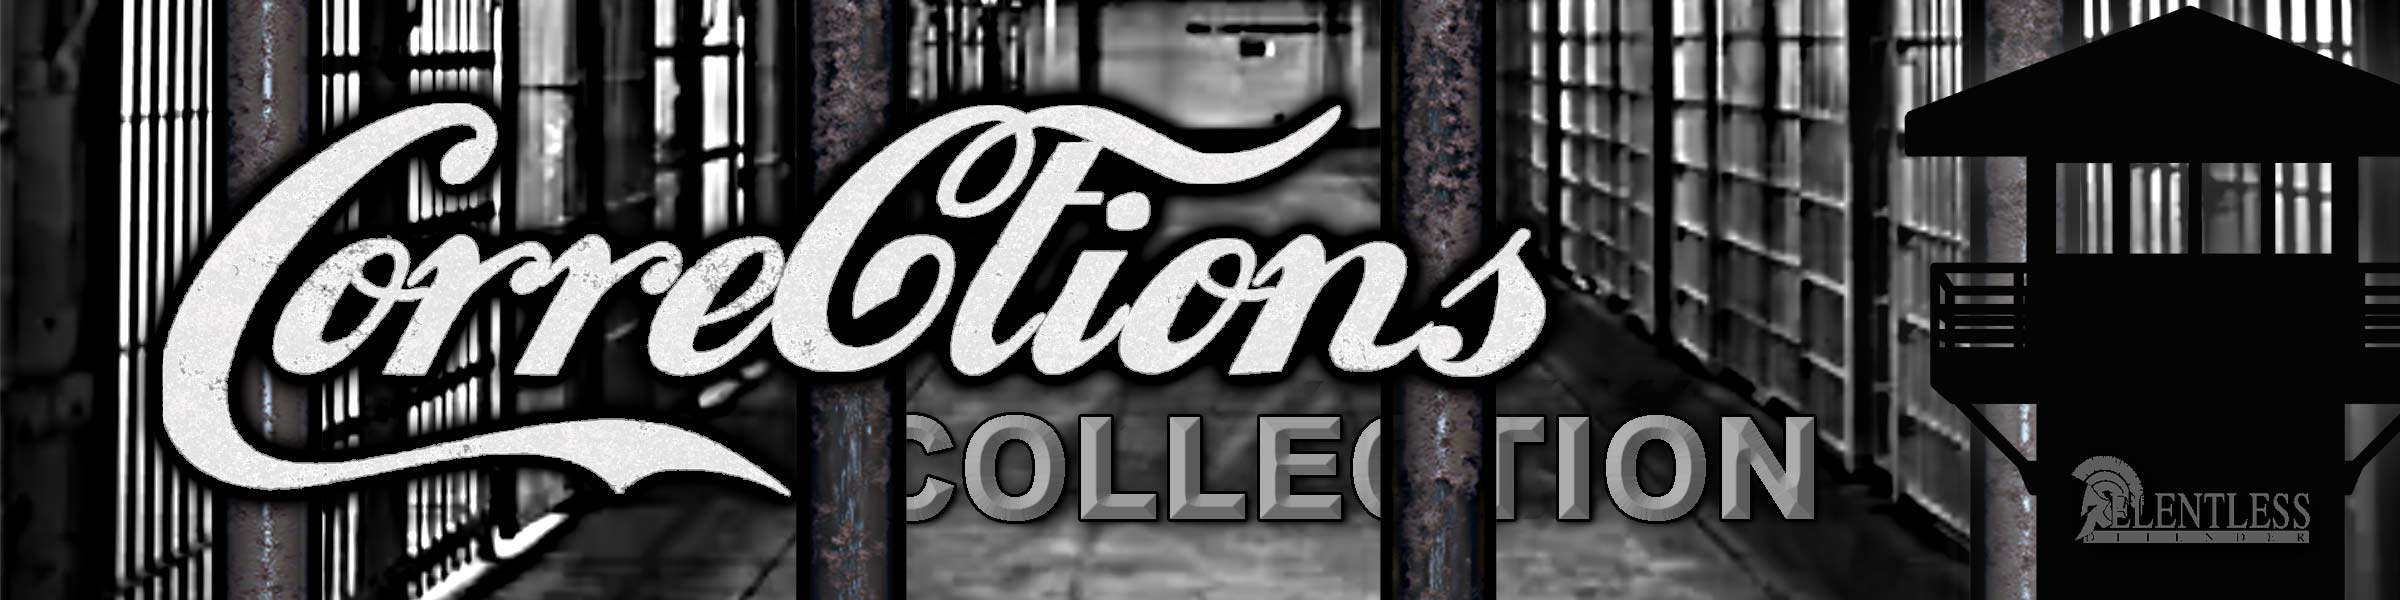 Corrections Collection